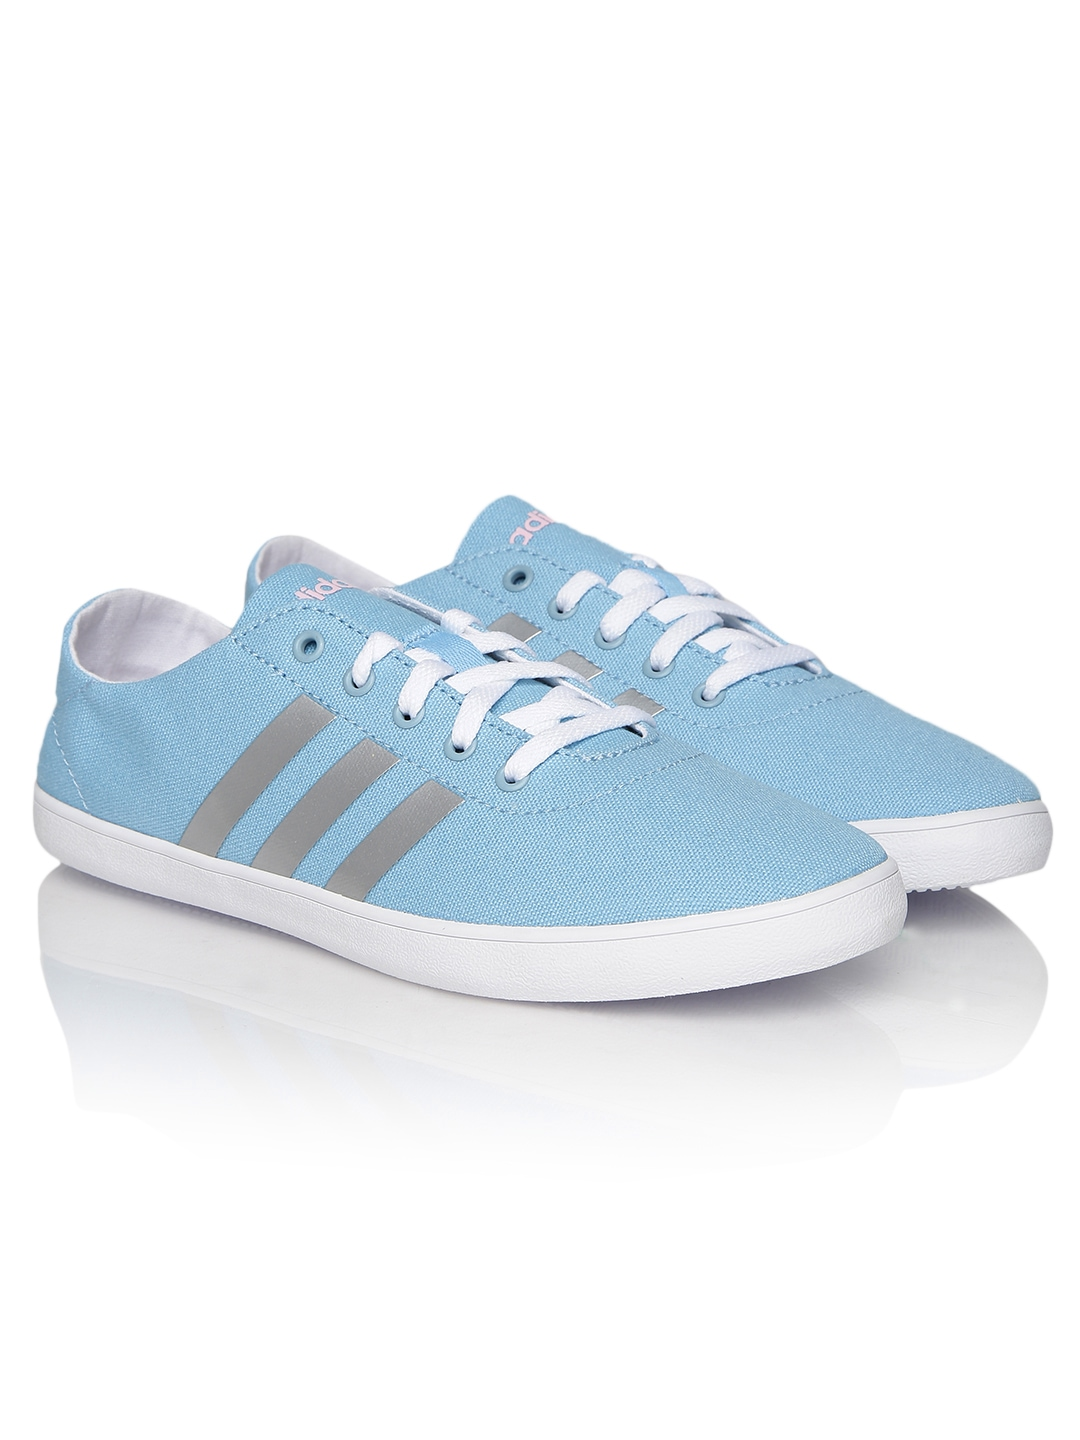 Adidas Neo Qt Vulc Vs Shoes